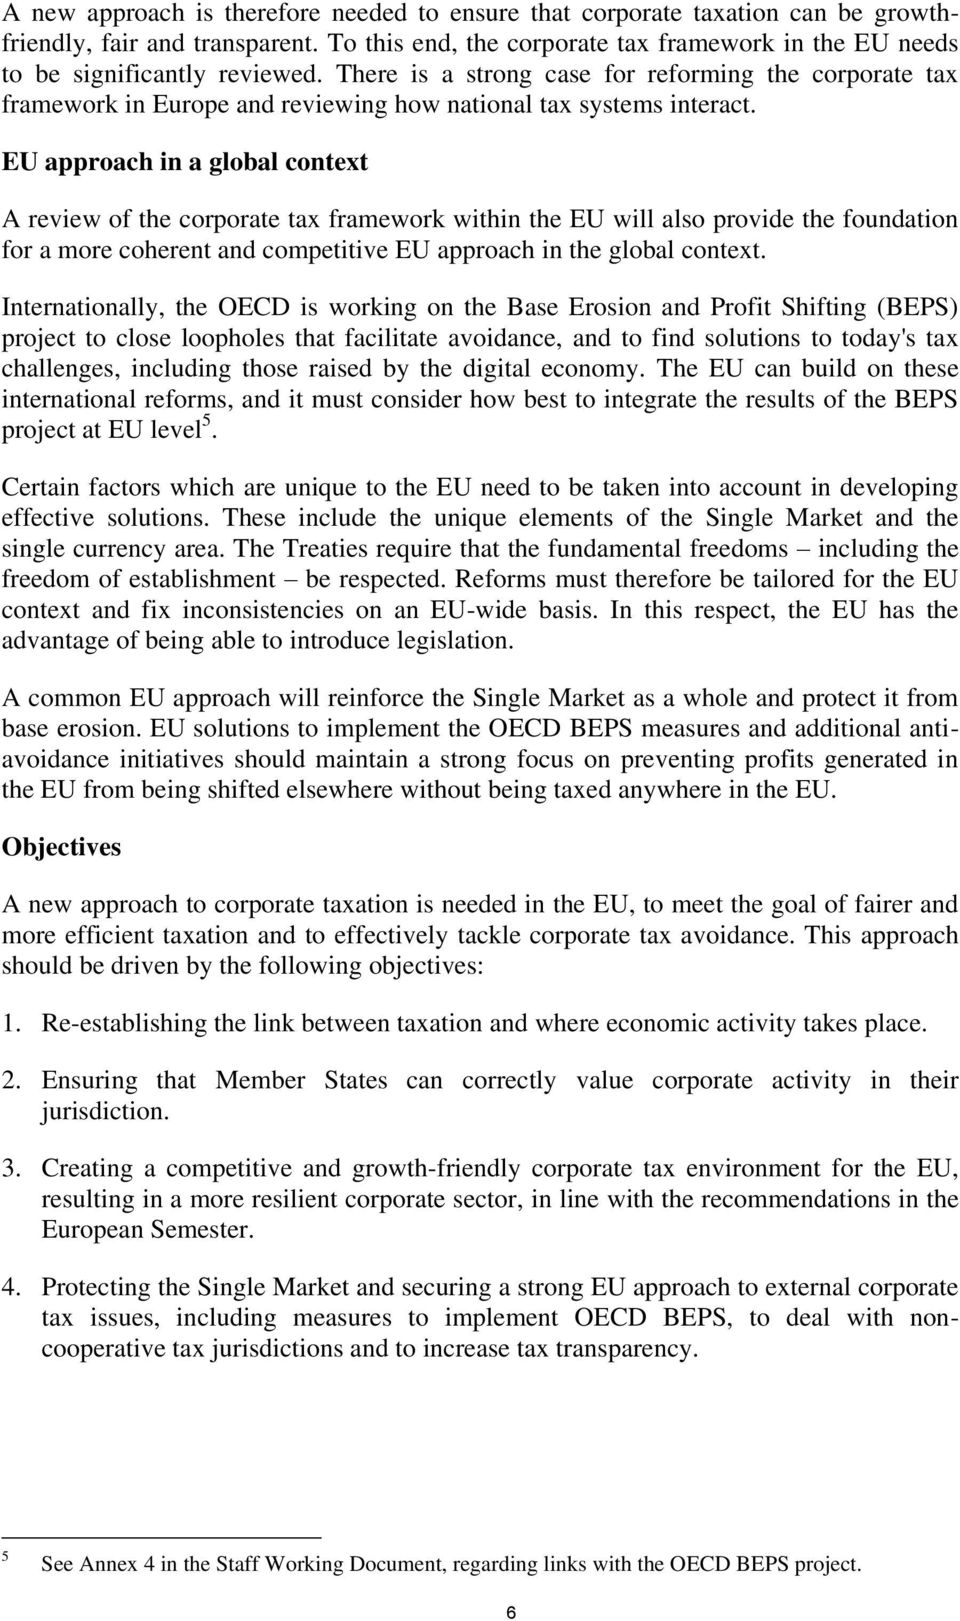 EU approach in a global context A review of the corporate tax framework within the EU will also provide the foundation for a more coherent and competitive EU approach in the global context.